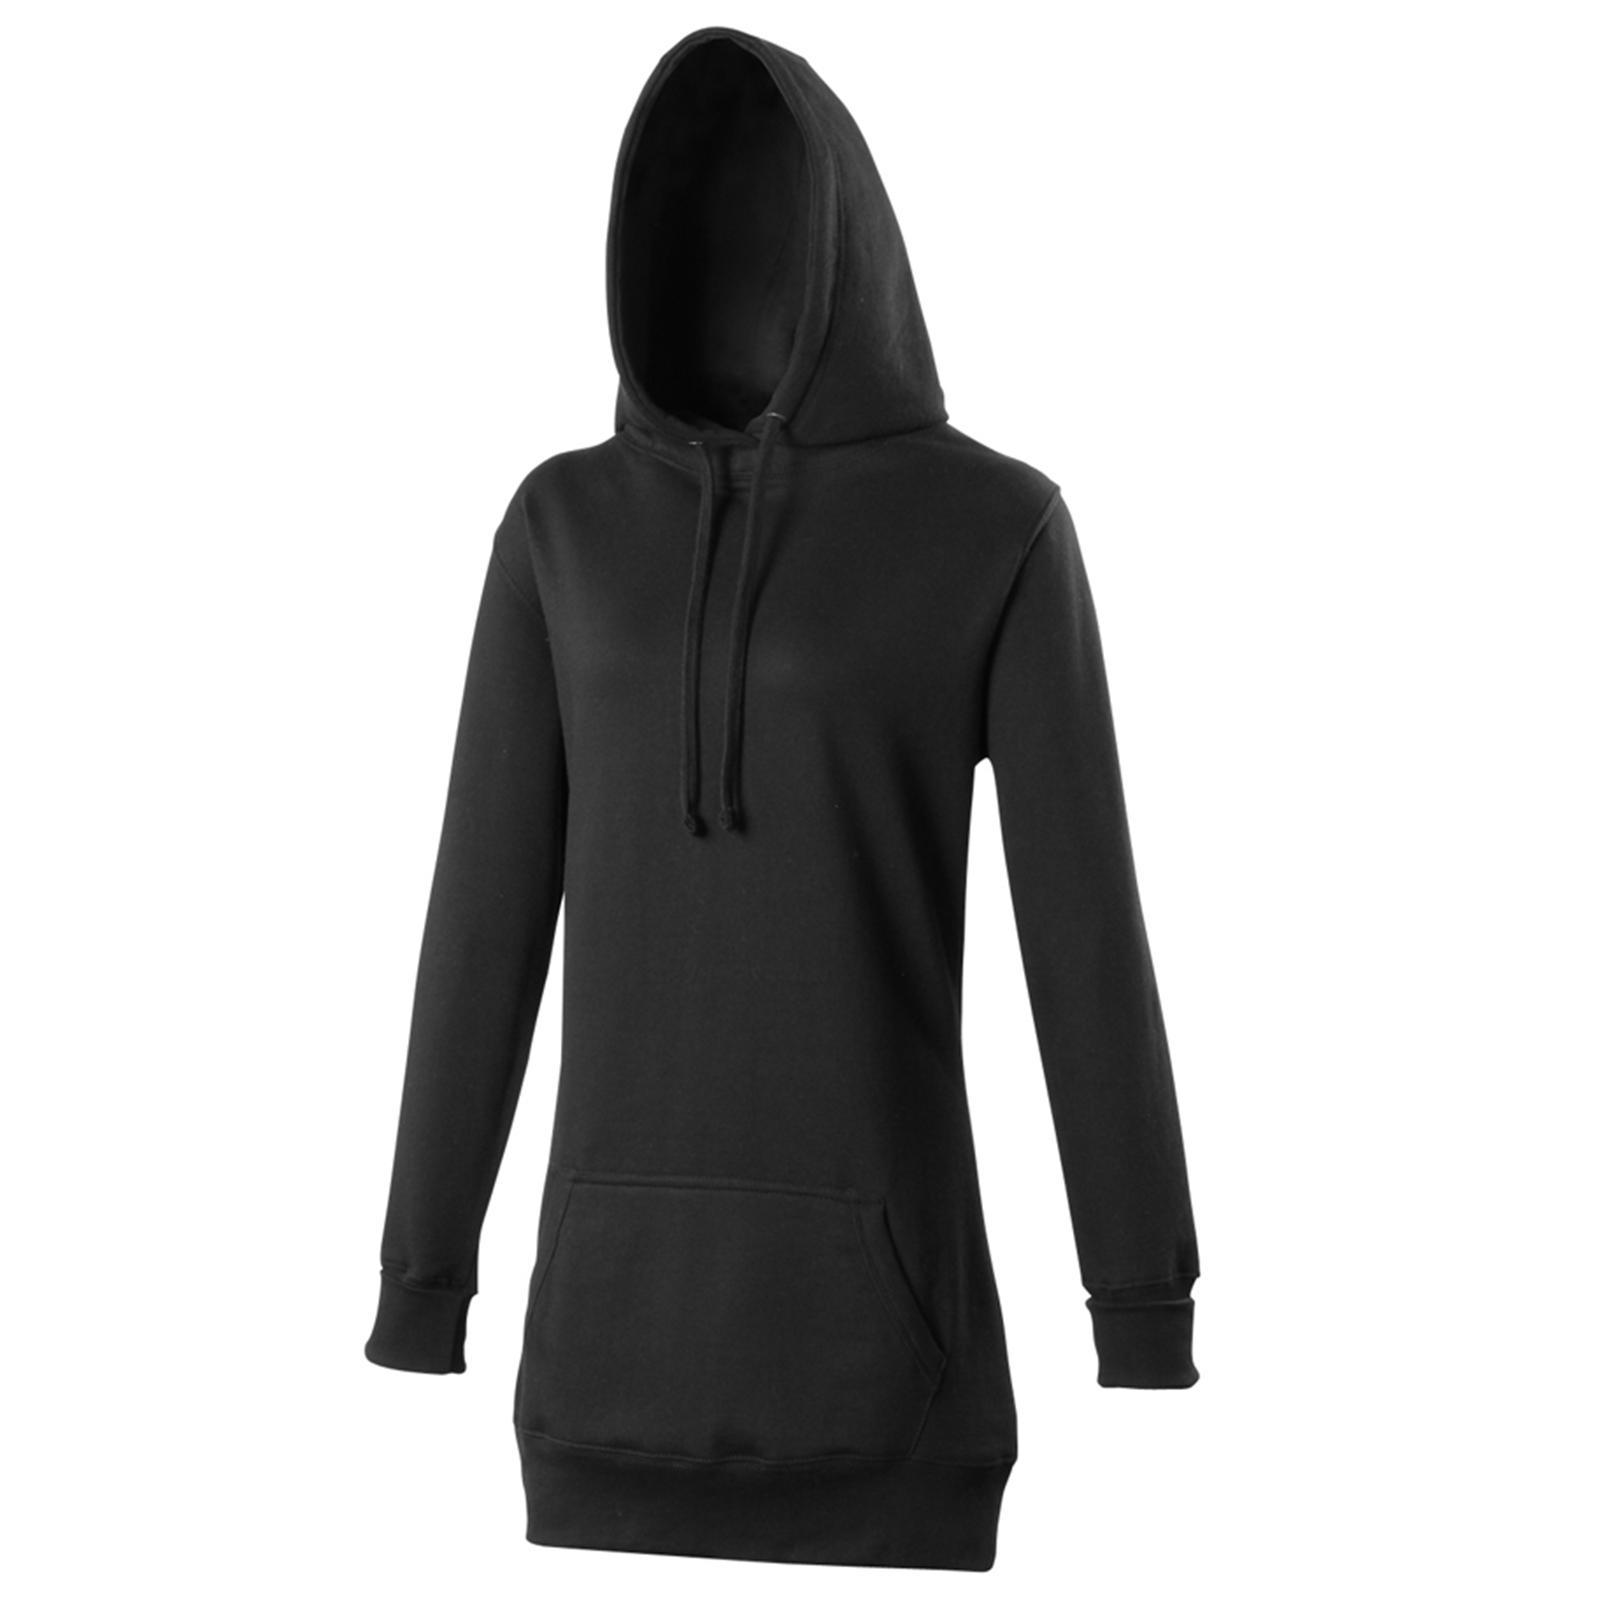 New JUST HOODS Womens Ladies Girlie Fashion Longline Hoodie 6 colours XS S M L